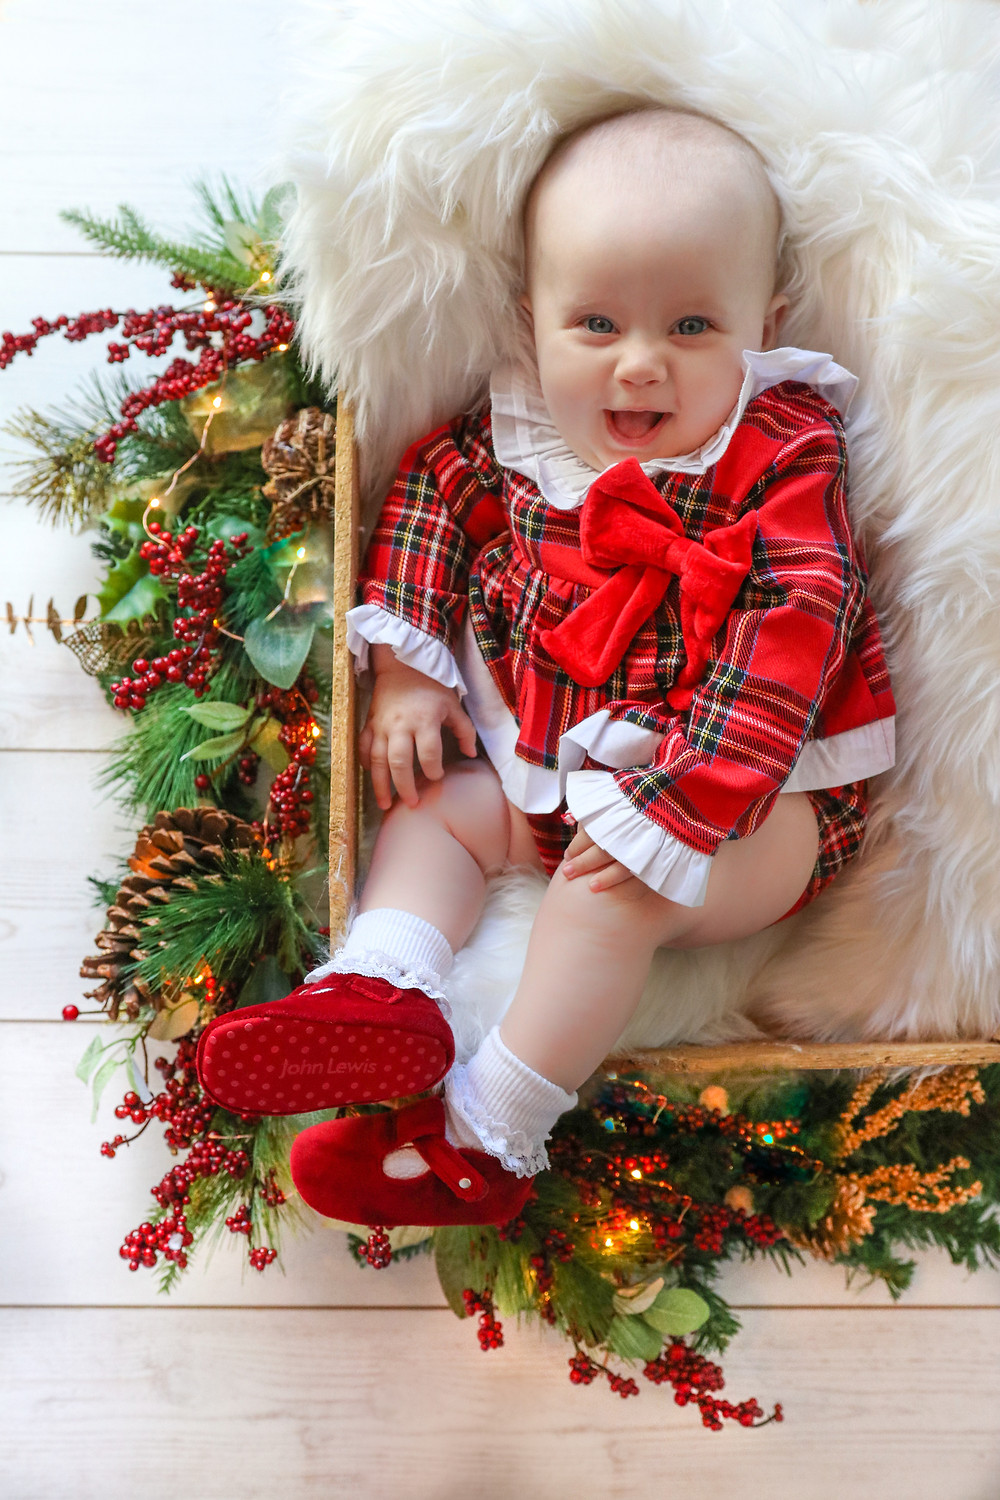 beautiful little baby girl wearing a red tartan outfit with a big red bow and matching red shoes, lying in a brown wooden crate stuffed with a white furry rug, surrounded by christmas decorations